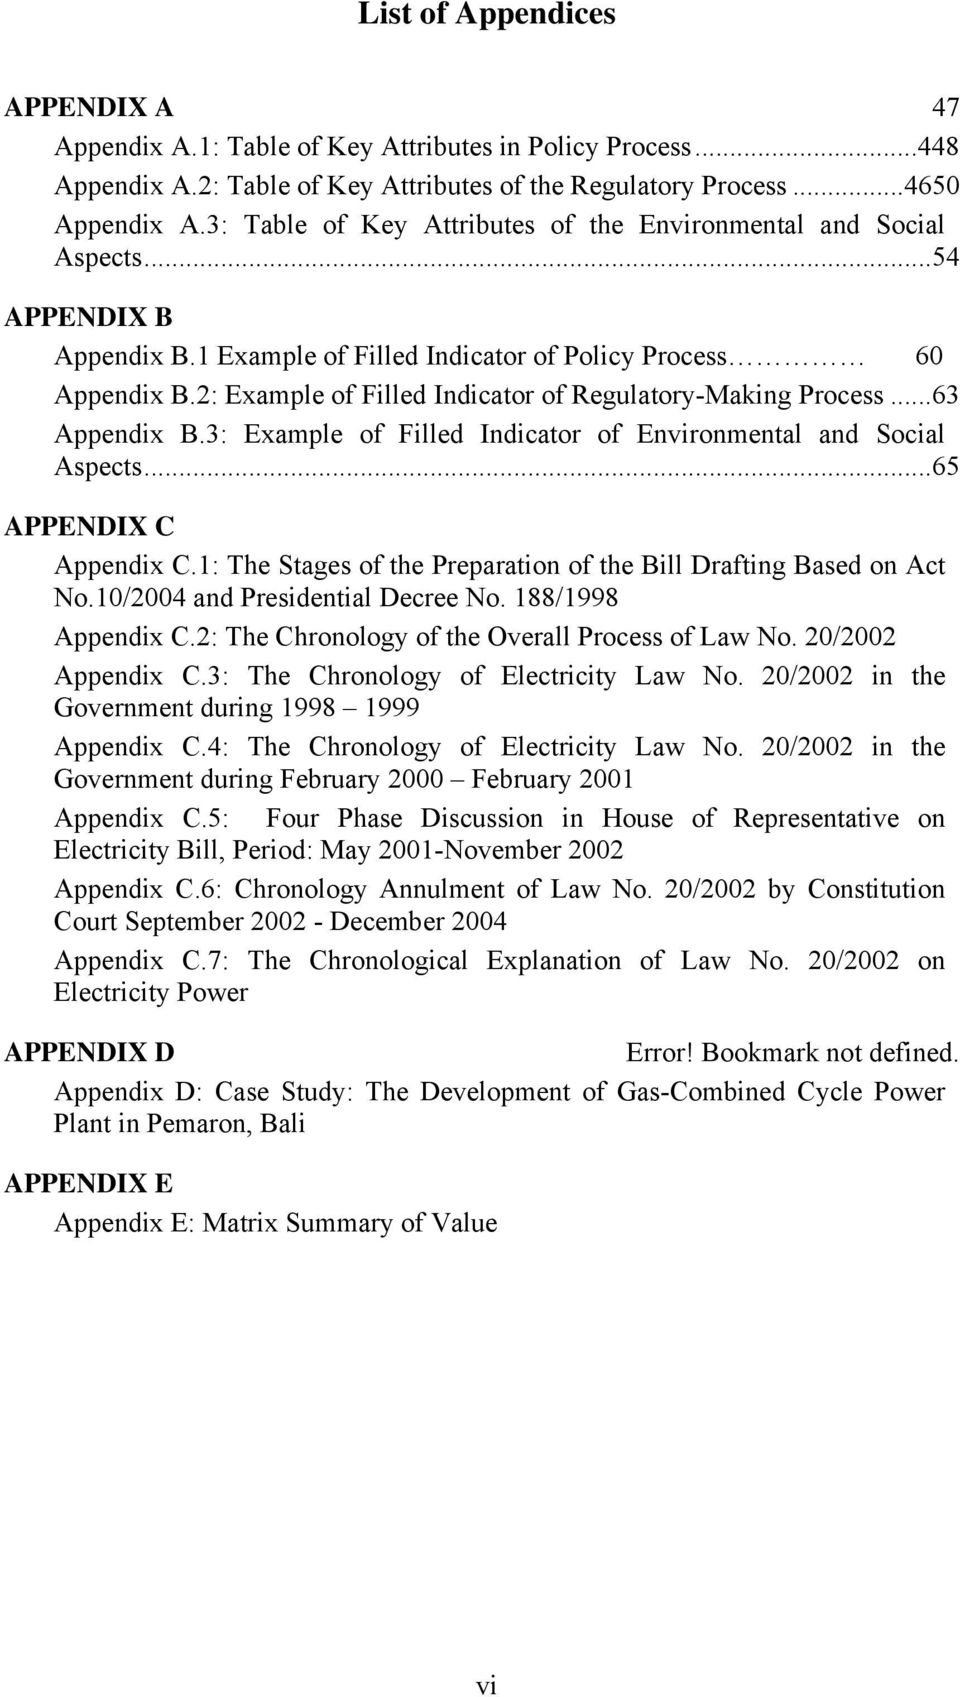 2: Example of Filled Indicator of Regulatory-Making Process...63 Appendix B.3: Example of Filled Indicator of Environmental and Social Aspects...65 APPENDIX C Appendix C.